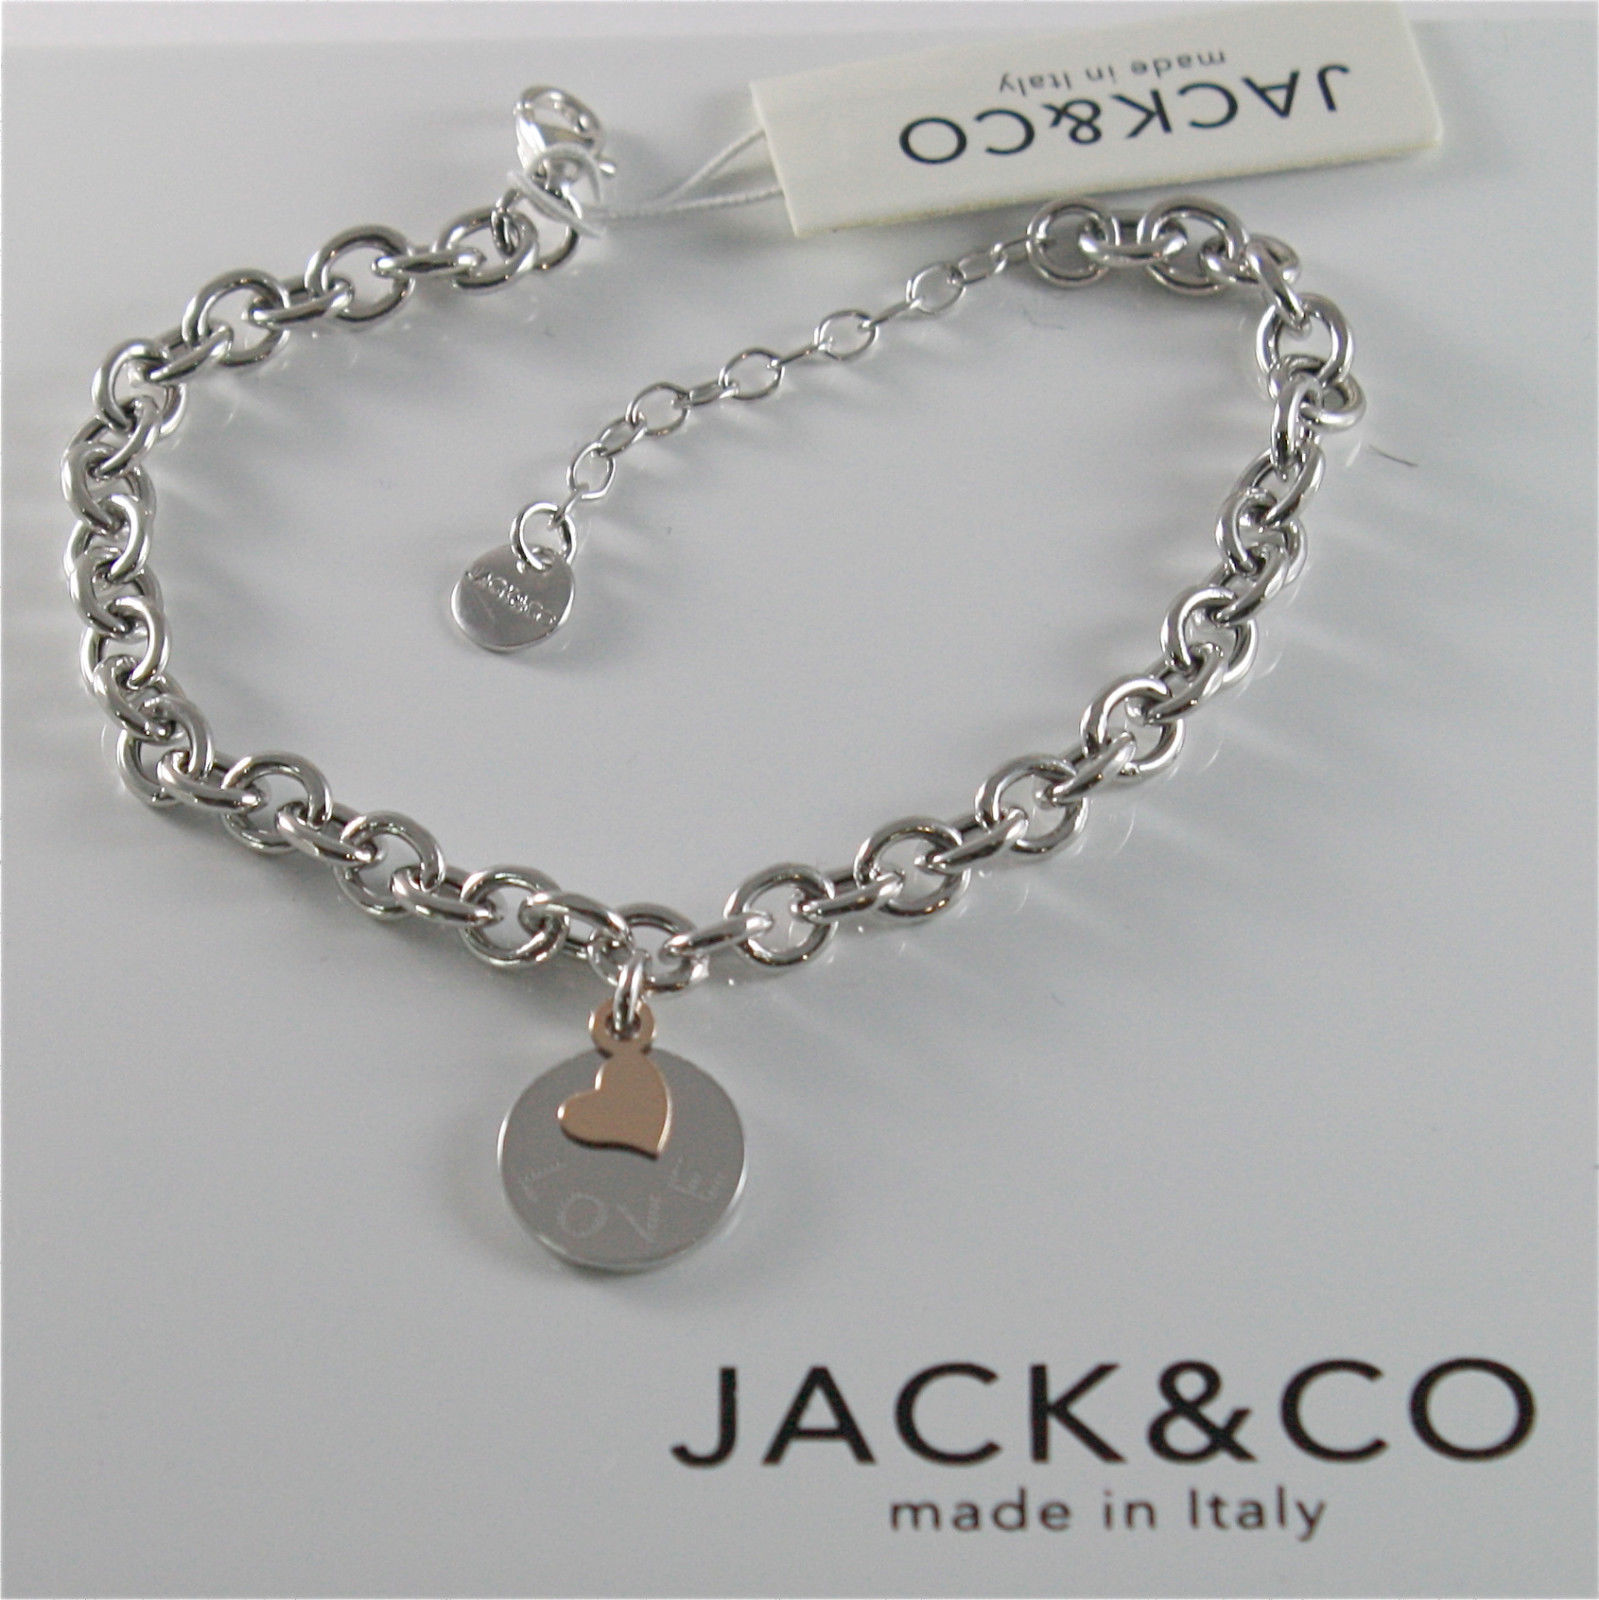 925 RHODIUM SILVER JACK&CO BRACELET WITH 9KT ROSE GOLD HEART LOVE  MADE IN ITALY